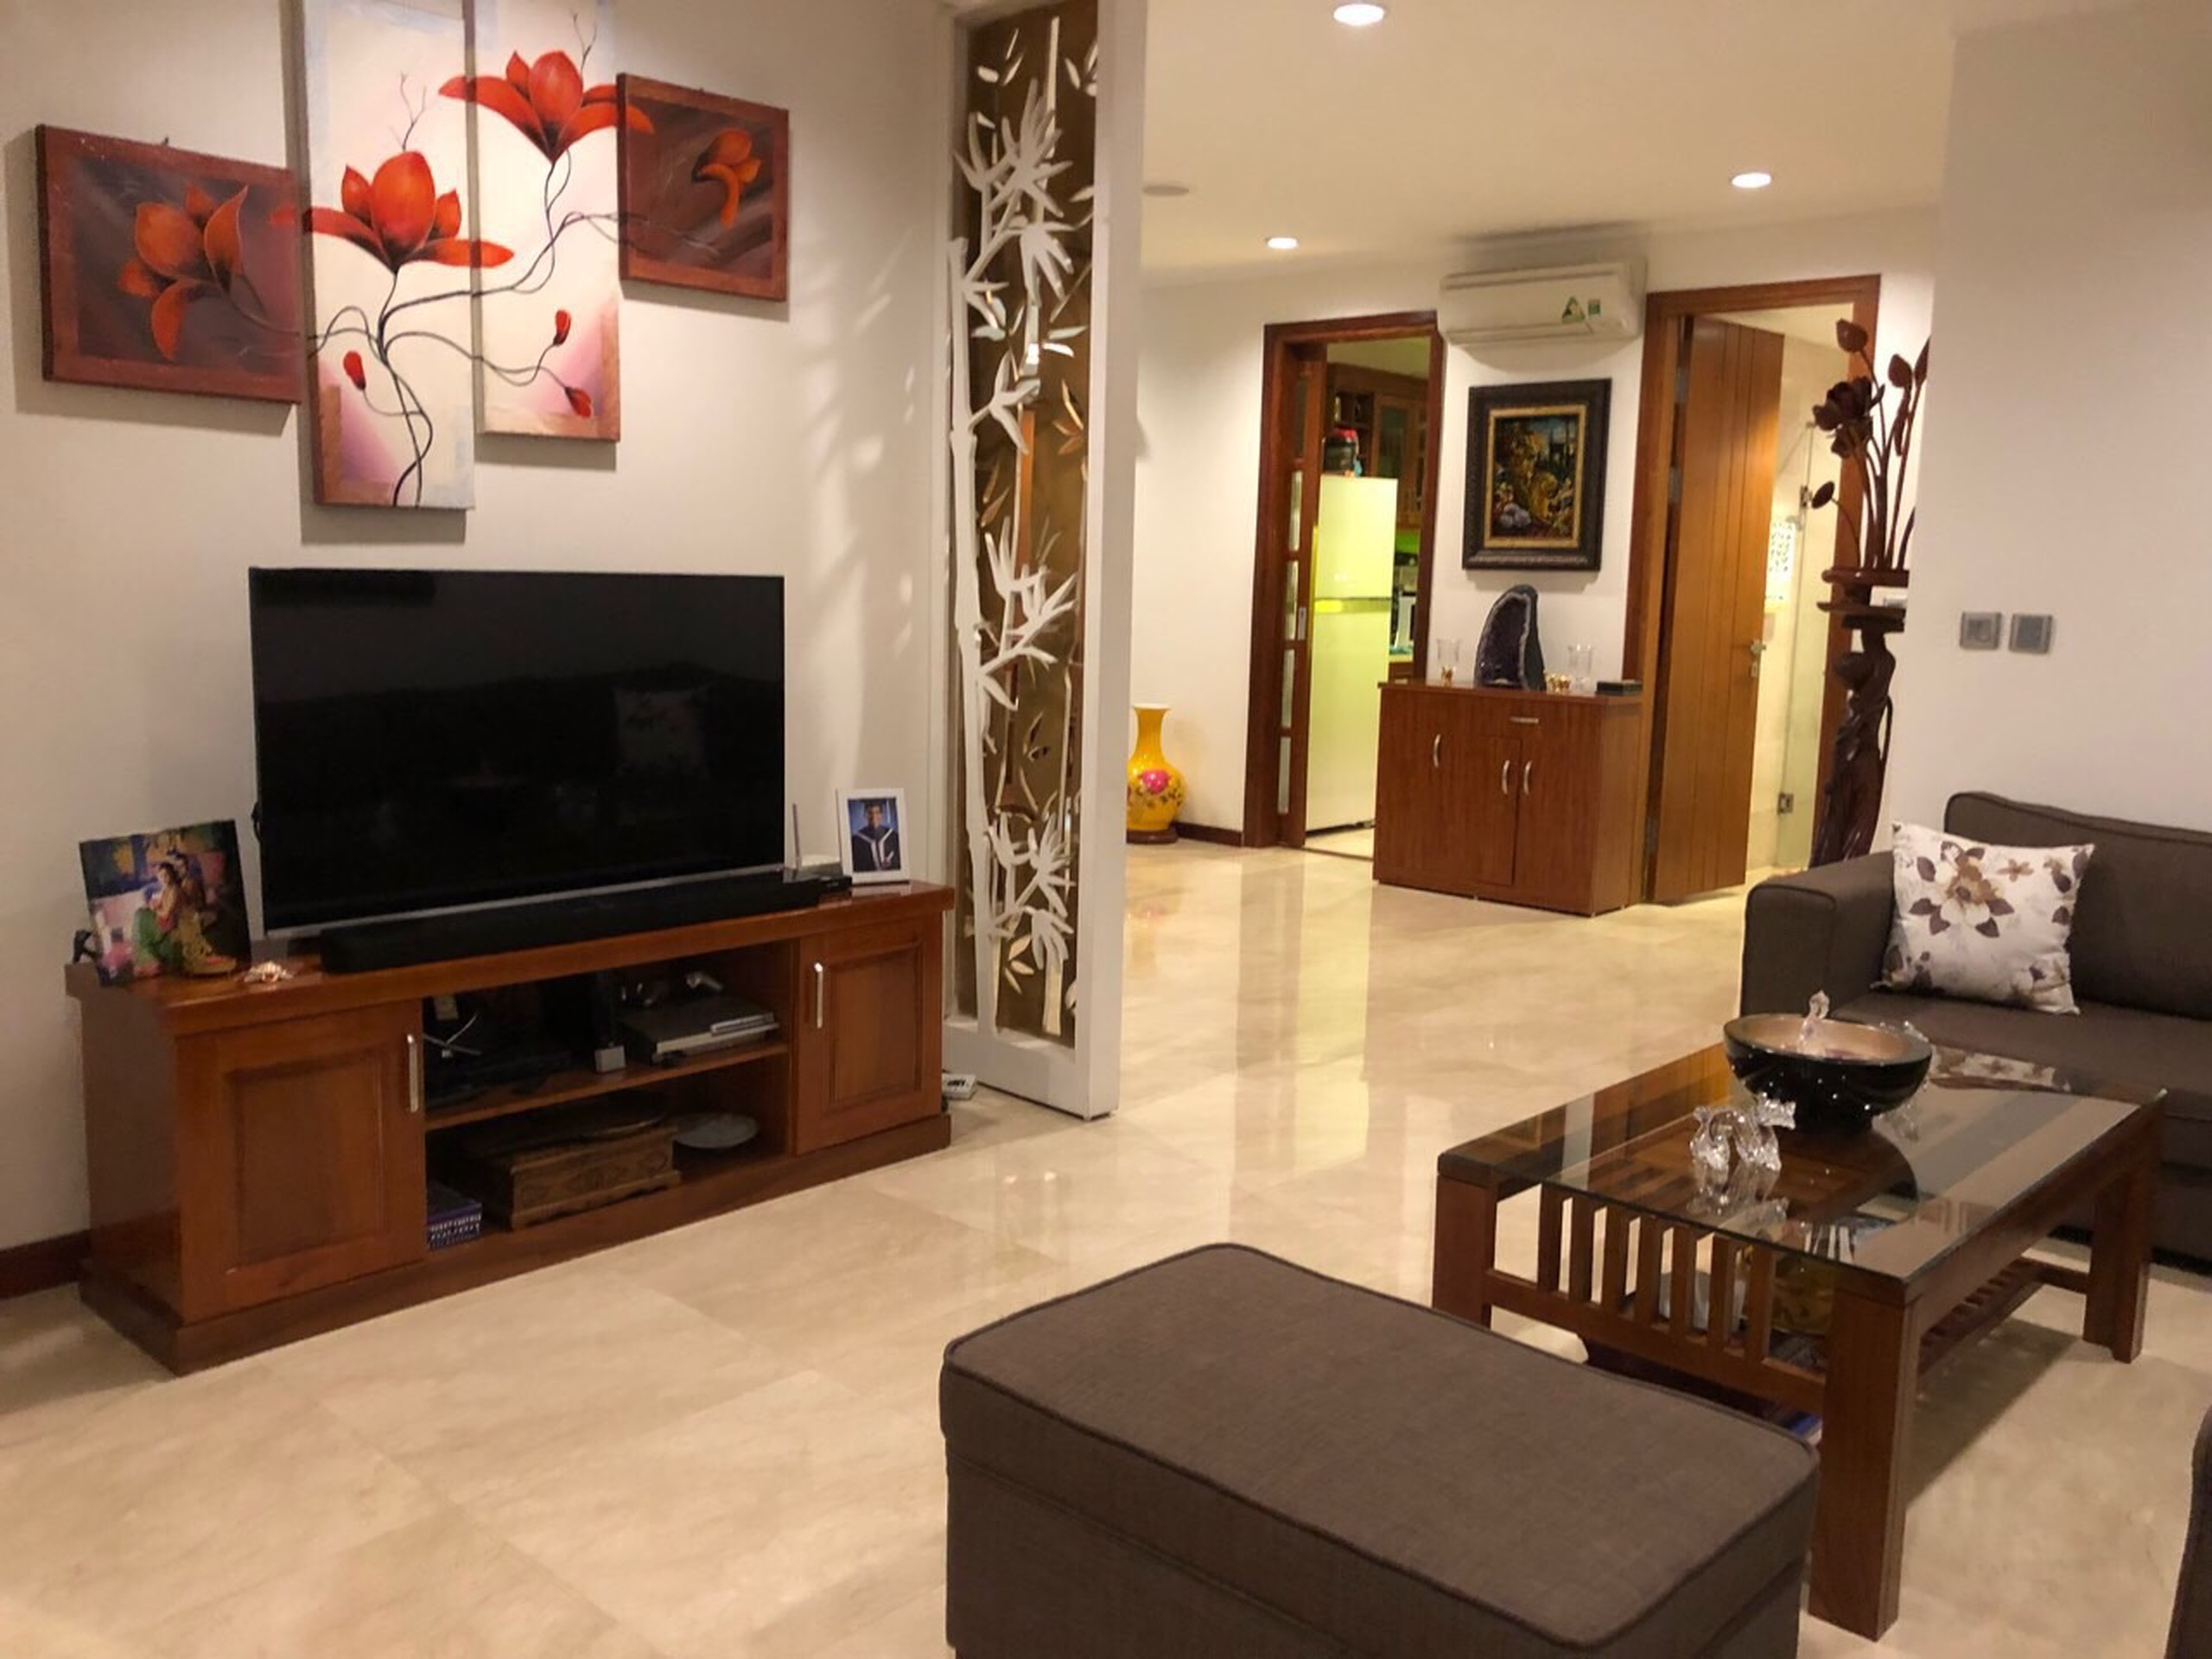 Apartment has an area of 154sqm, 3 bedrooms at L1 Ciputra, good rental price.